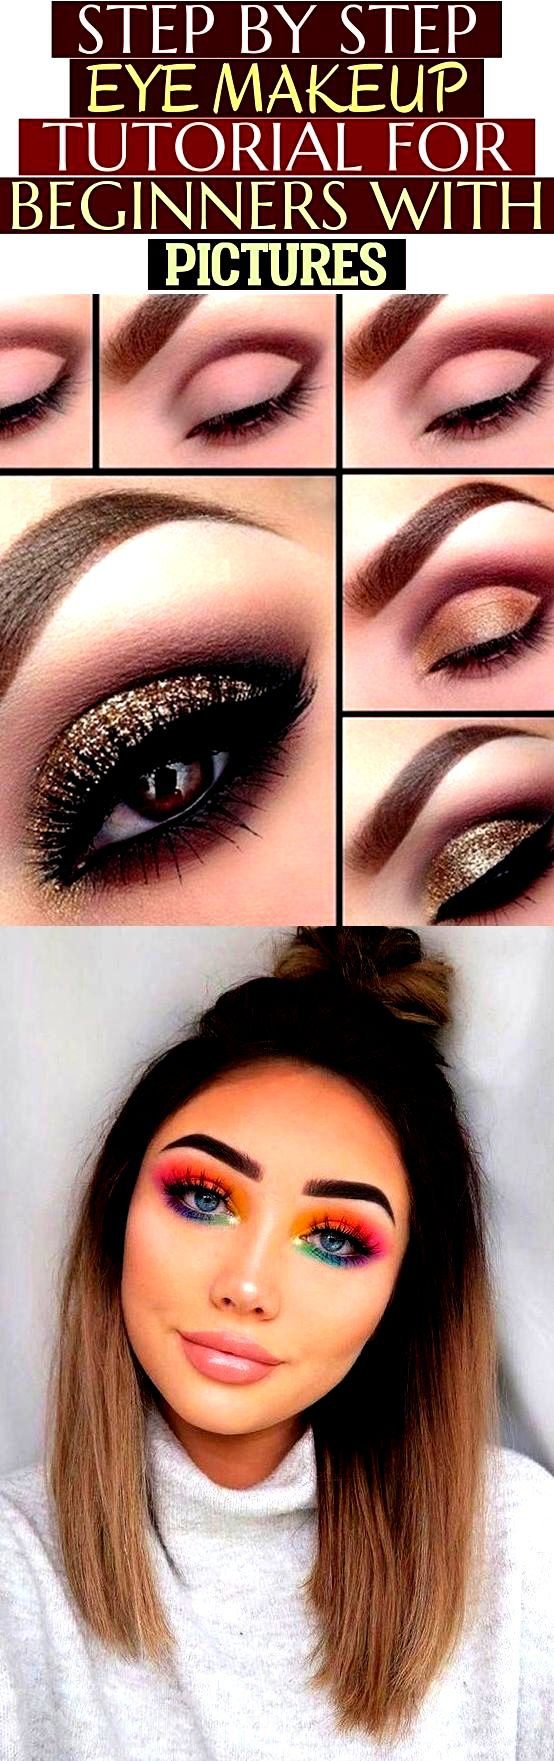 Step by step eye makeup tutorial for beginners with ...